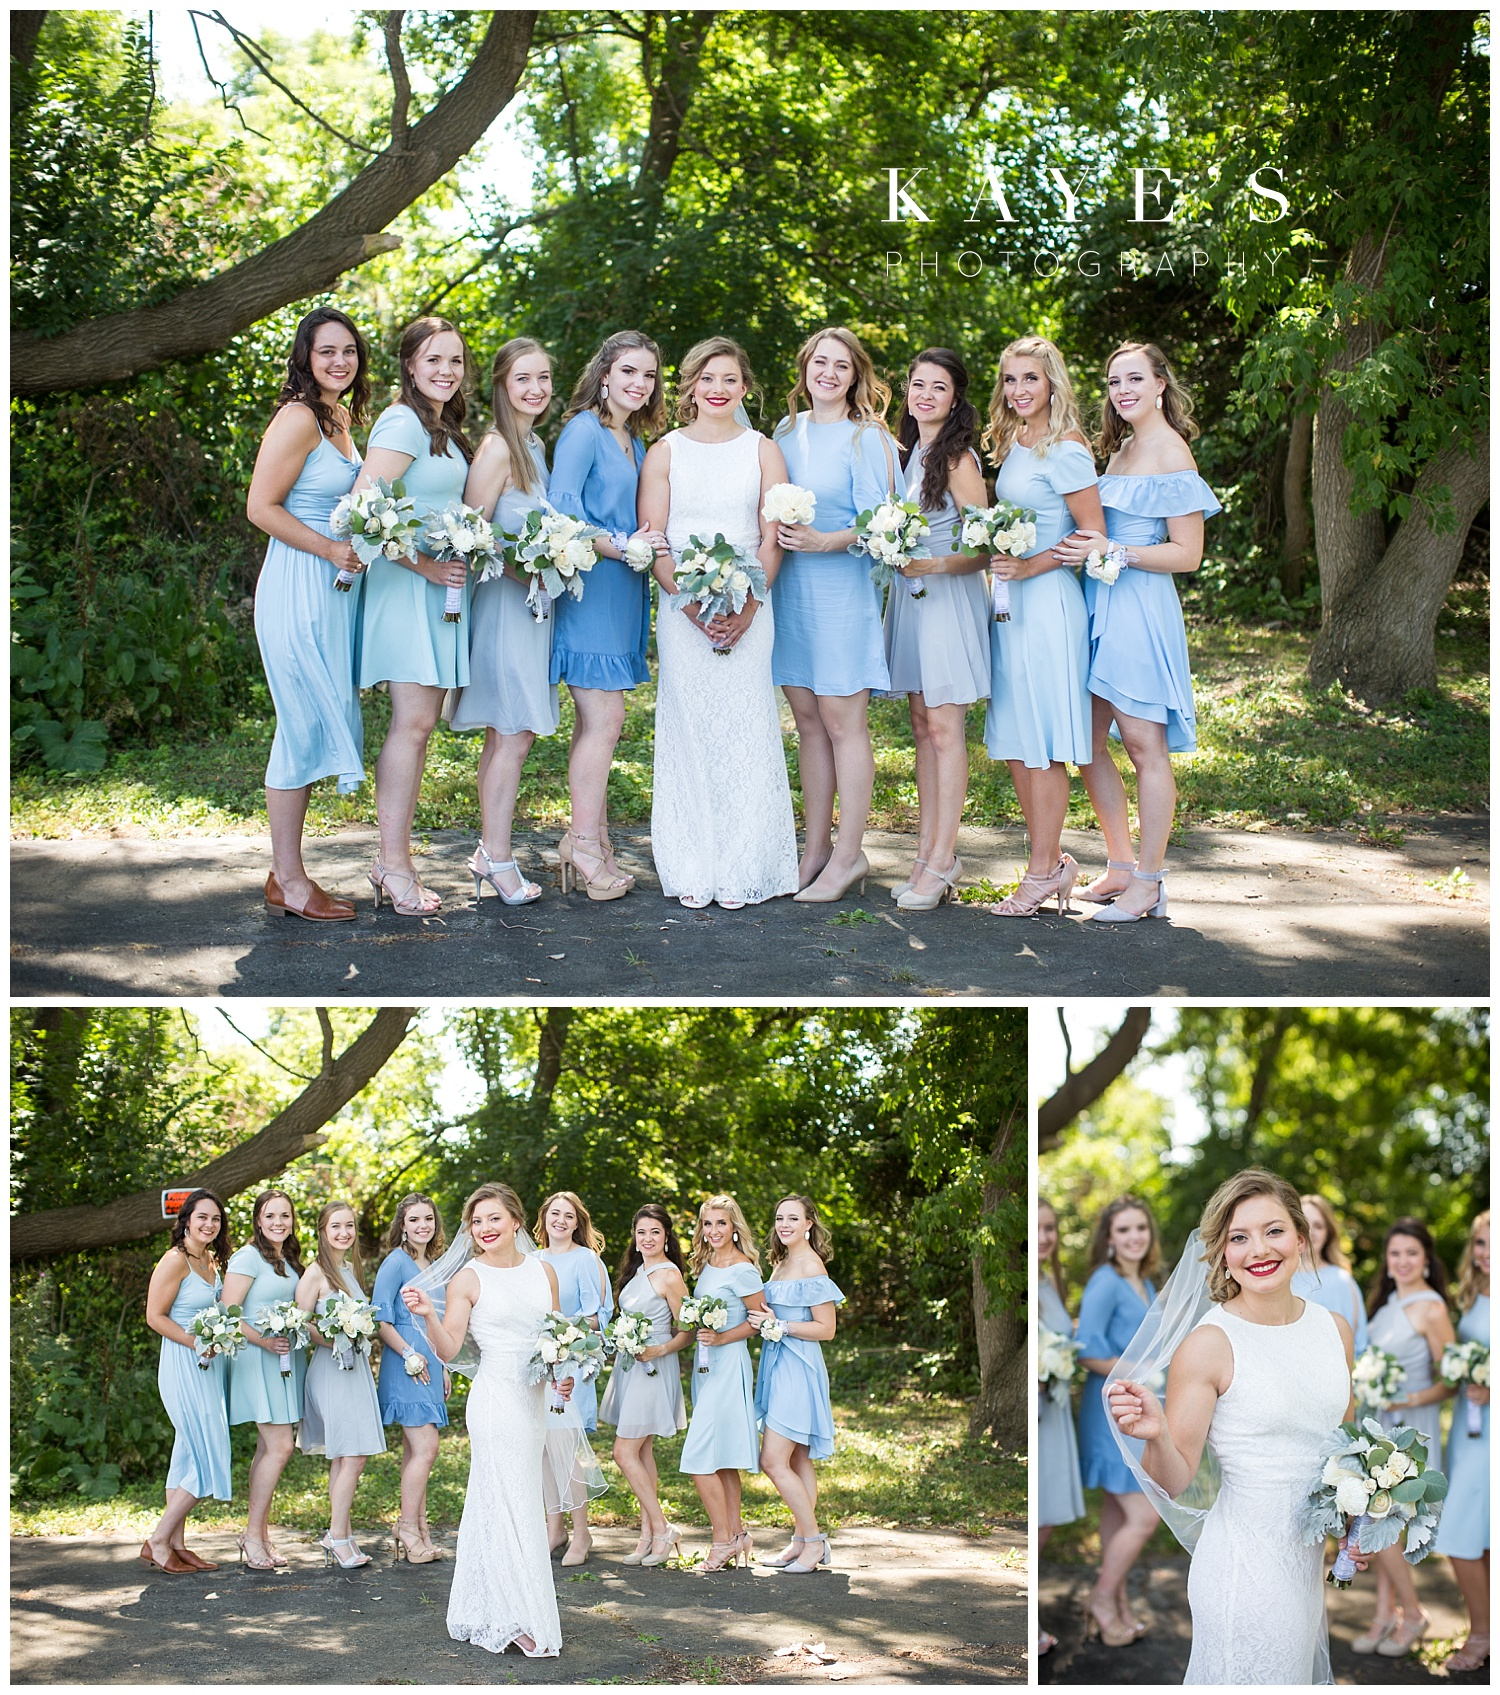 bride and bridesmaids in sky blue dresses before wedding ceremony in genesee county